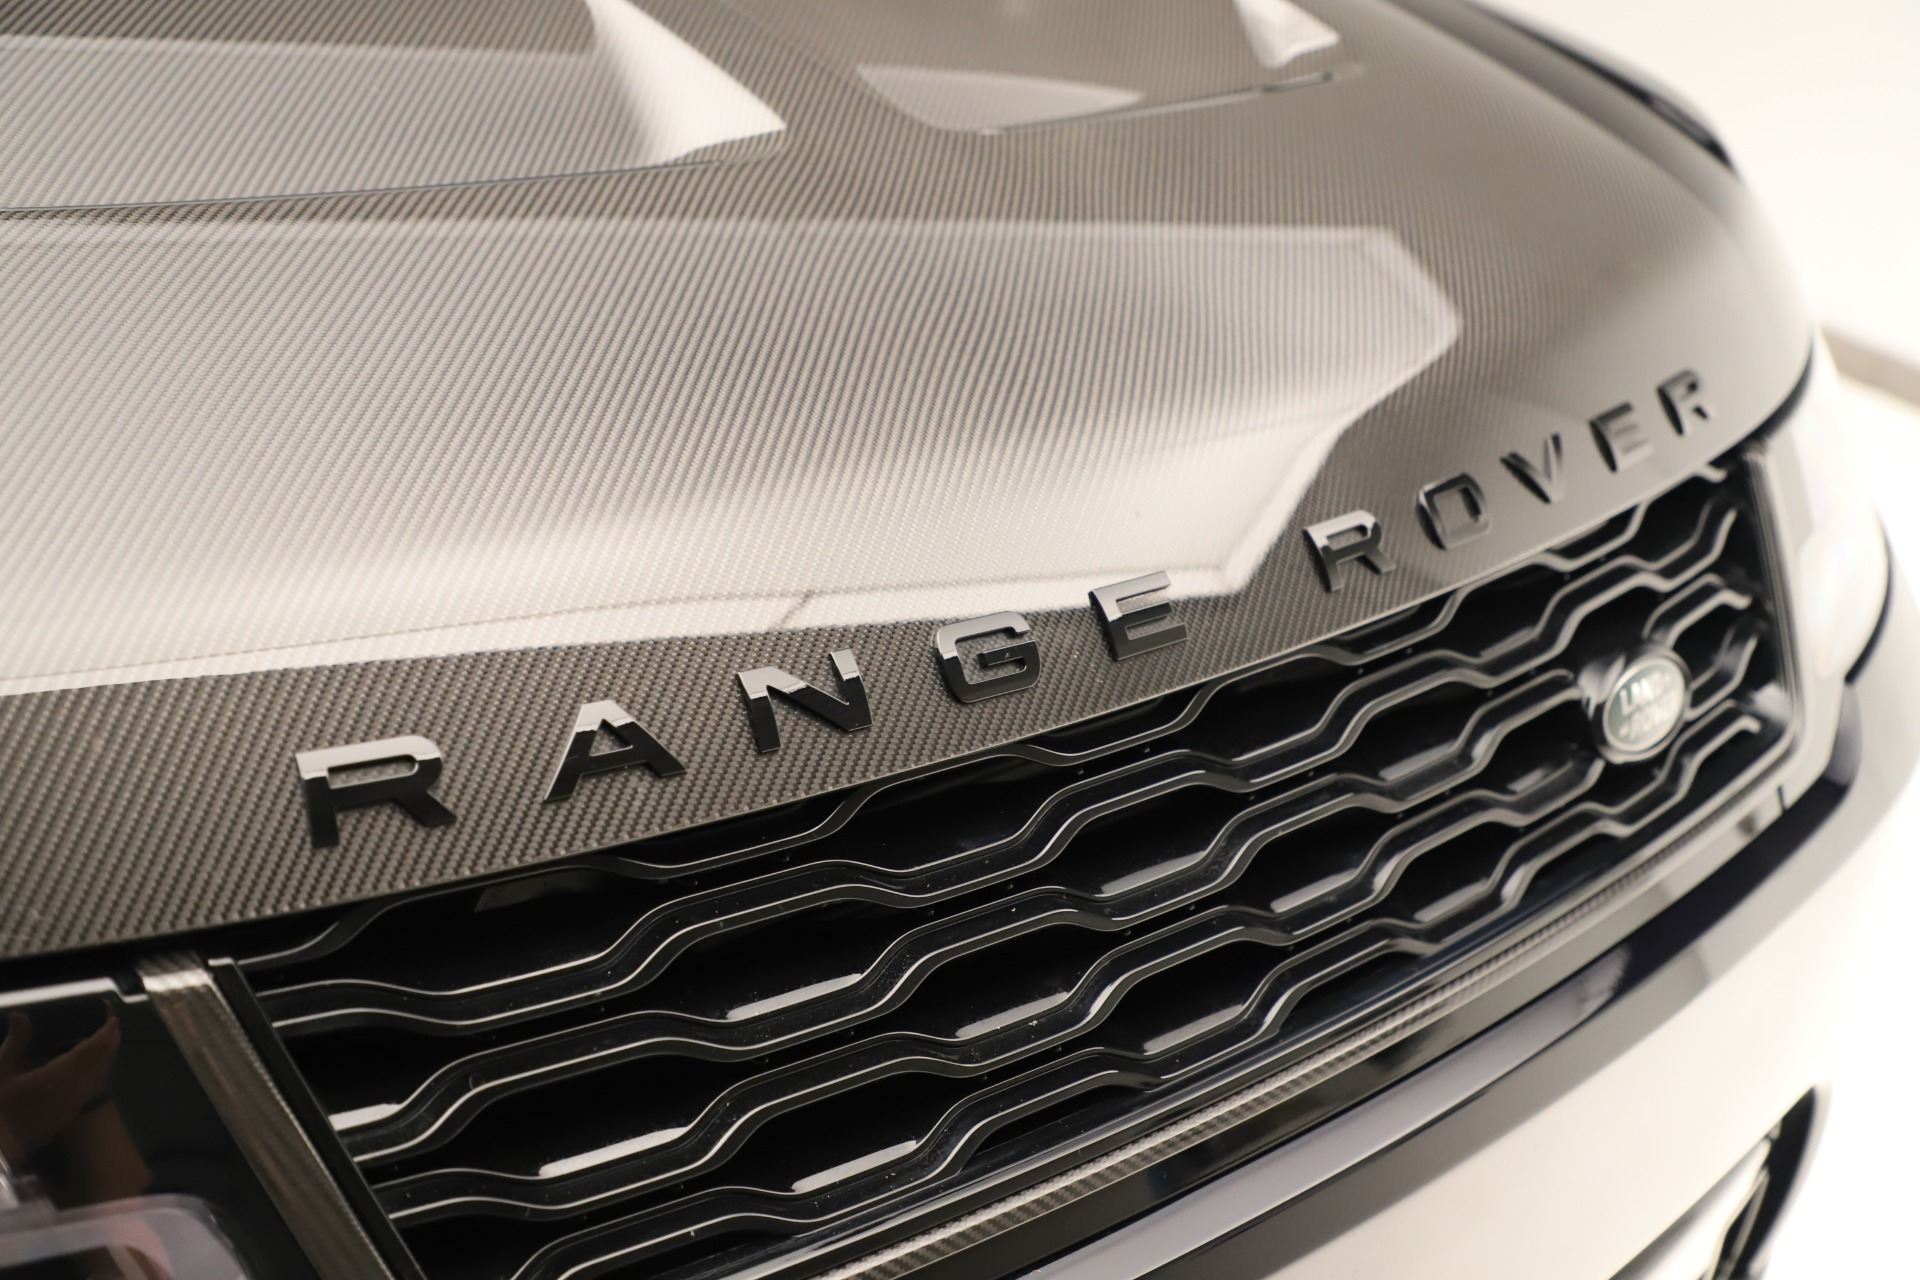 Used 2019 Land Rover Range Rover Sport SVR For Sale In Greenwich, CT 3353_p24